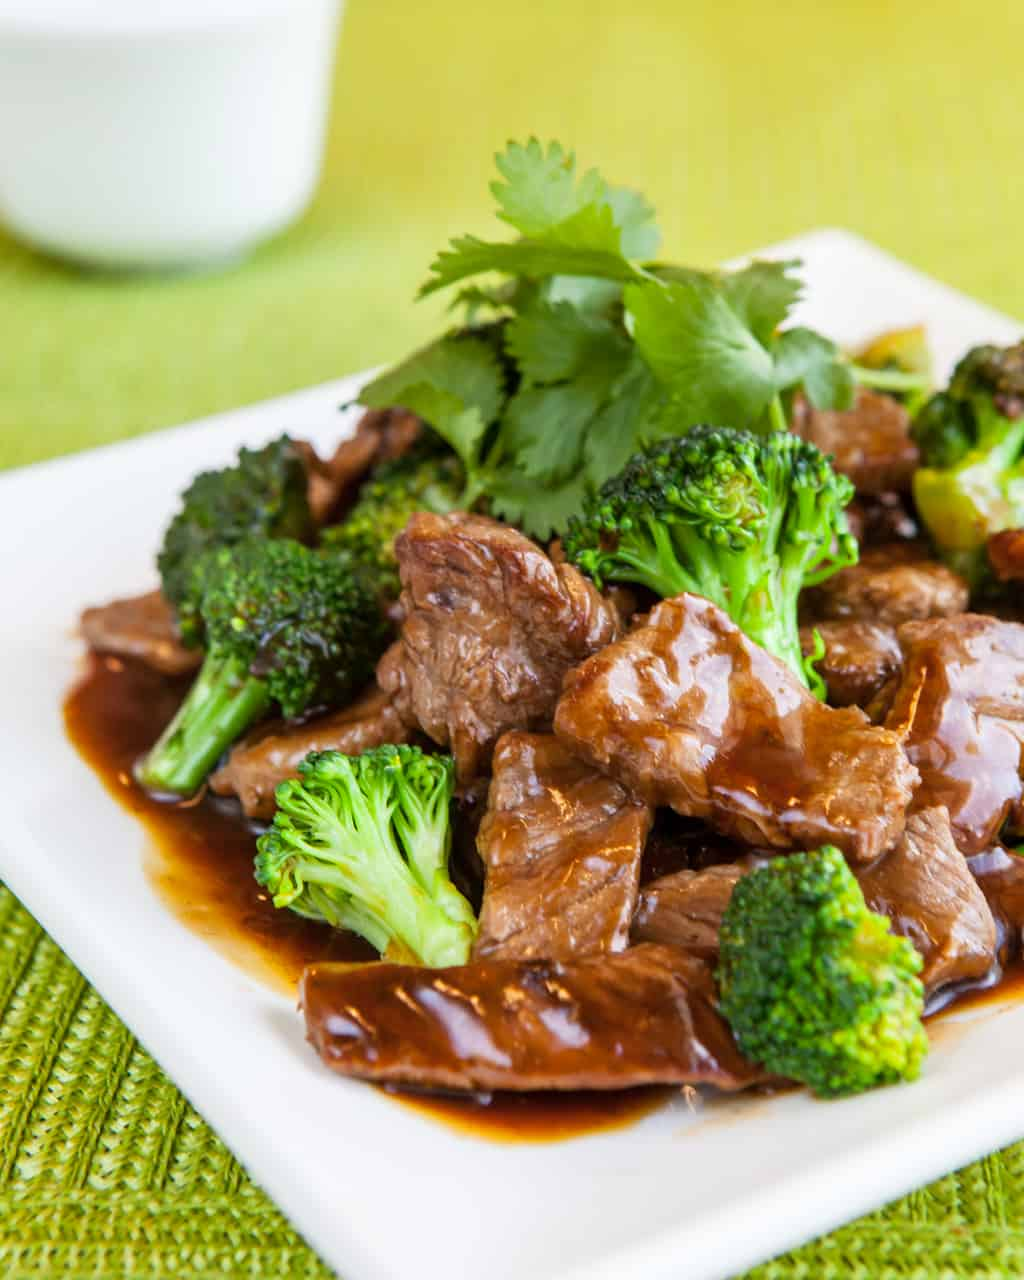 Easy 10 Minute Chinese Beef And Broccoli Stir Fry Recipe